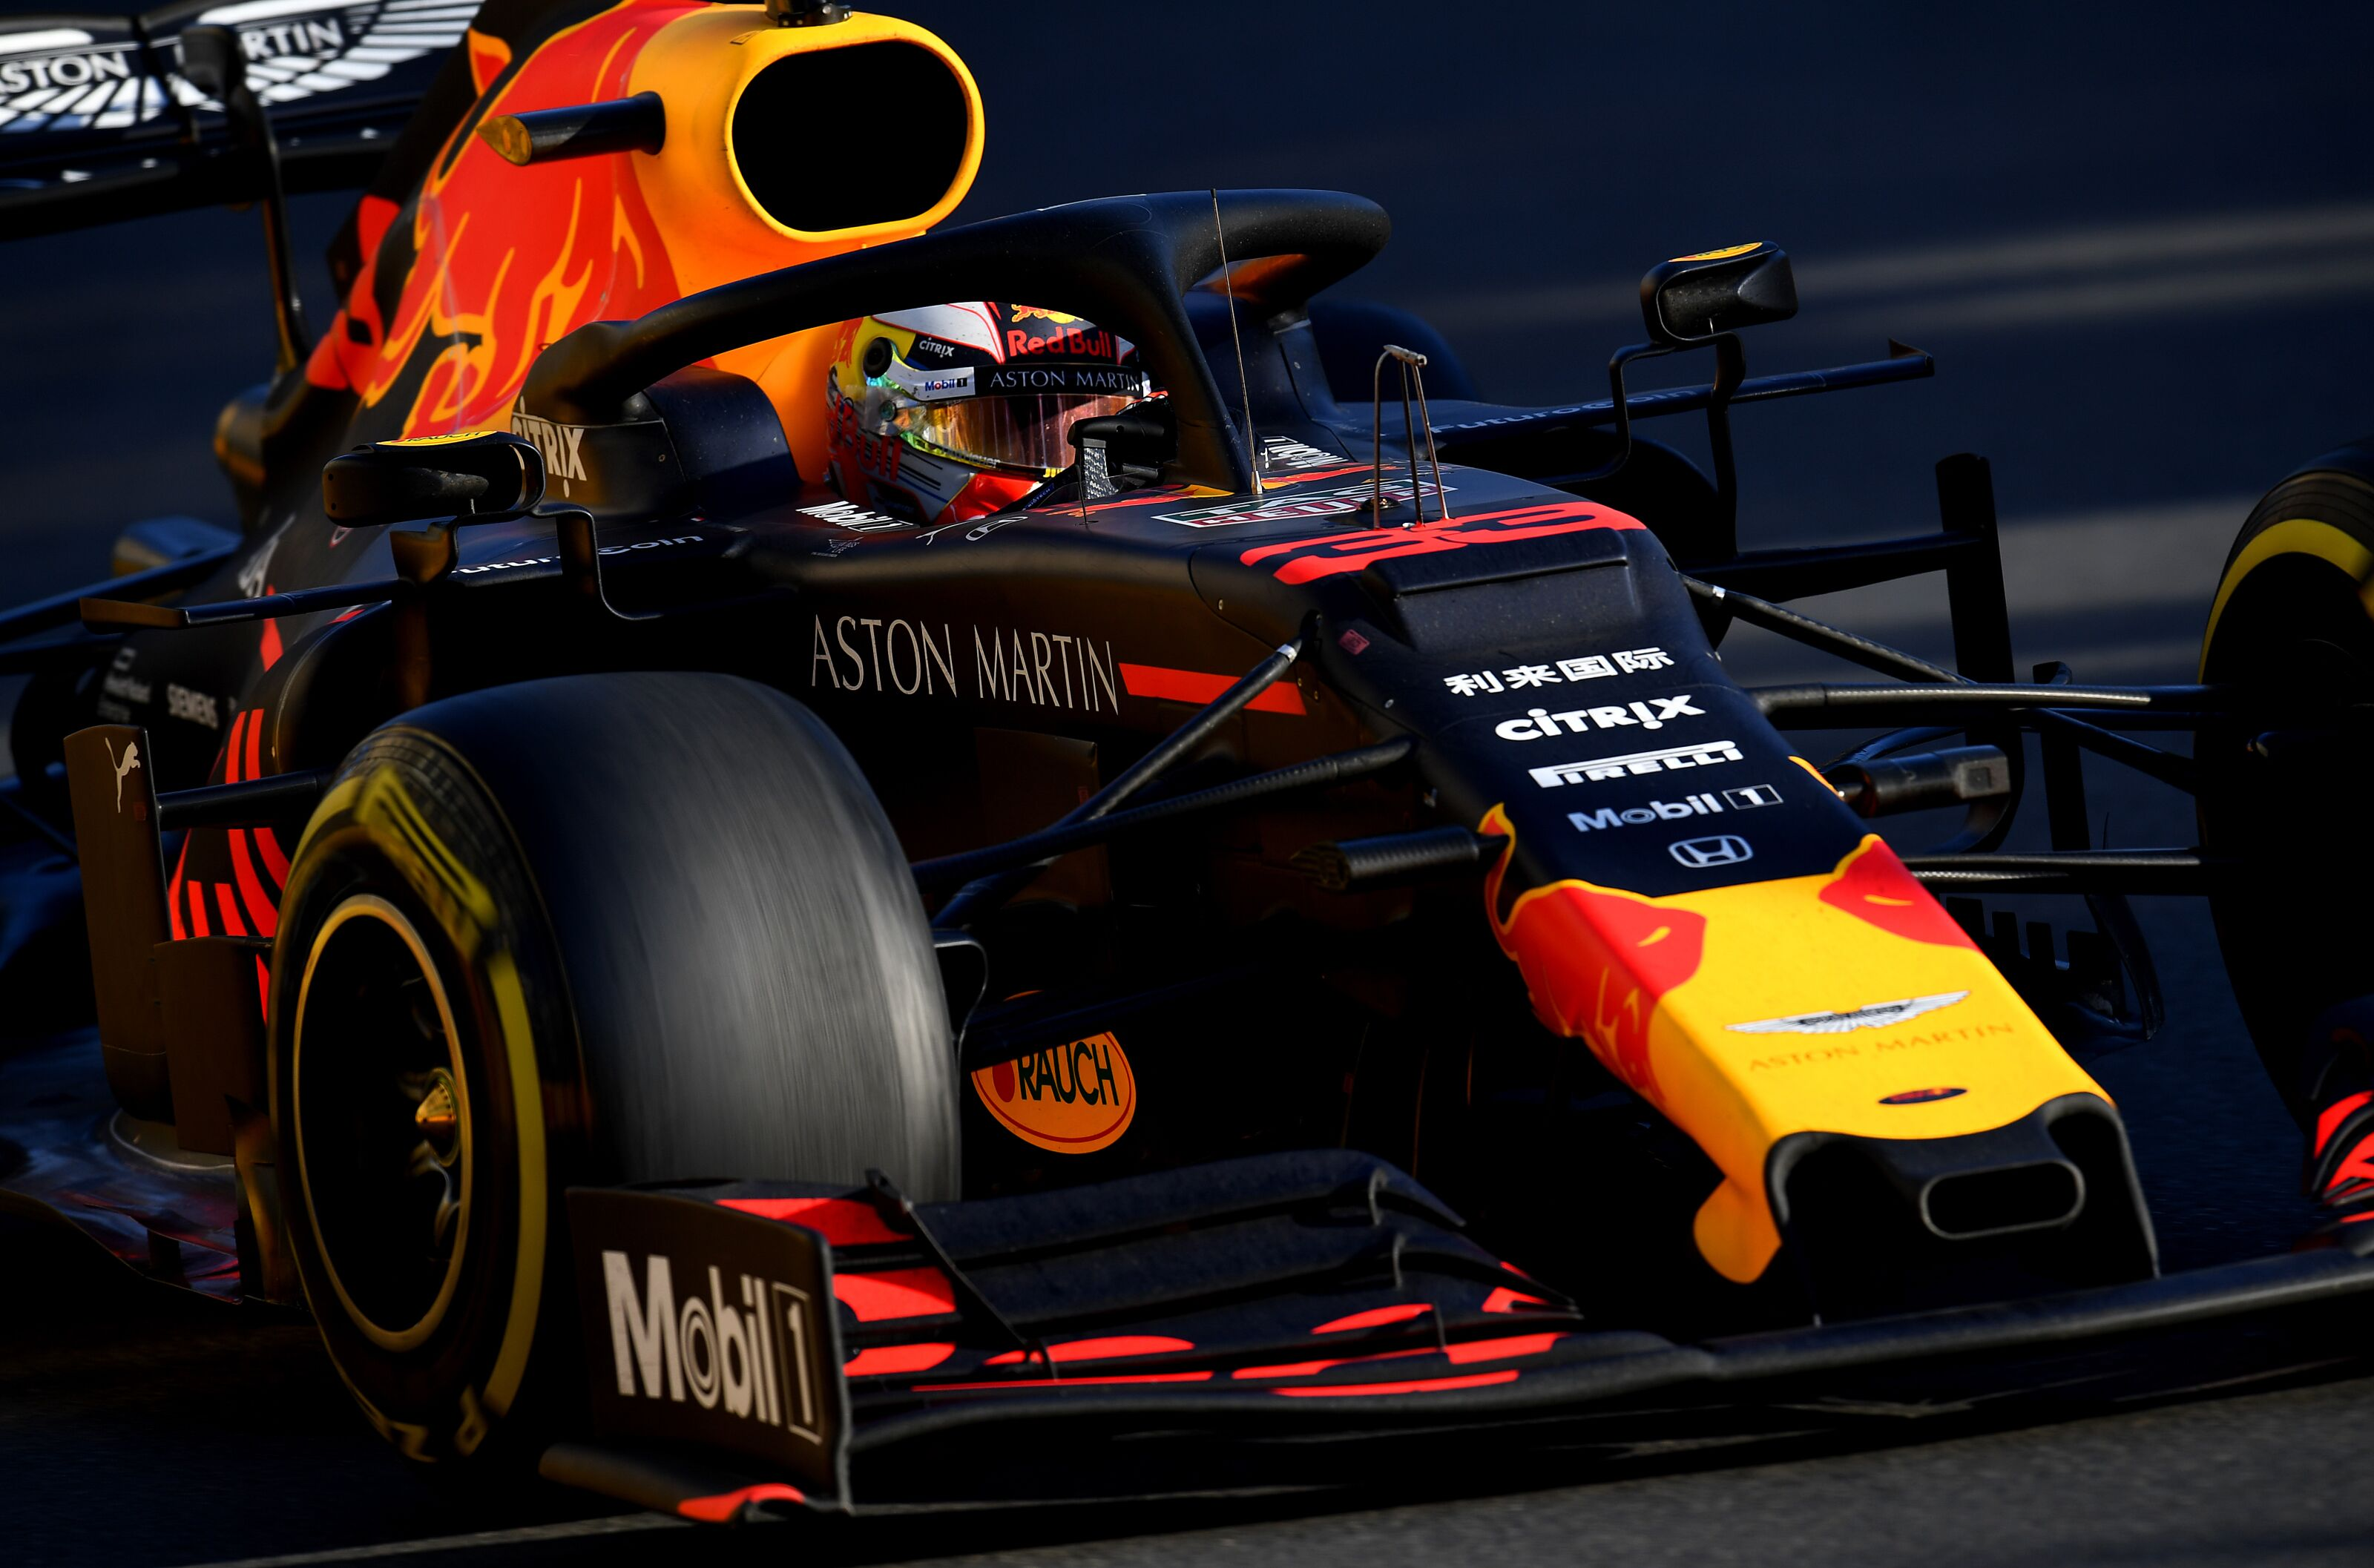 Formula 1: Red Bull Racing have bigger problems than Max Verstappen rumors